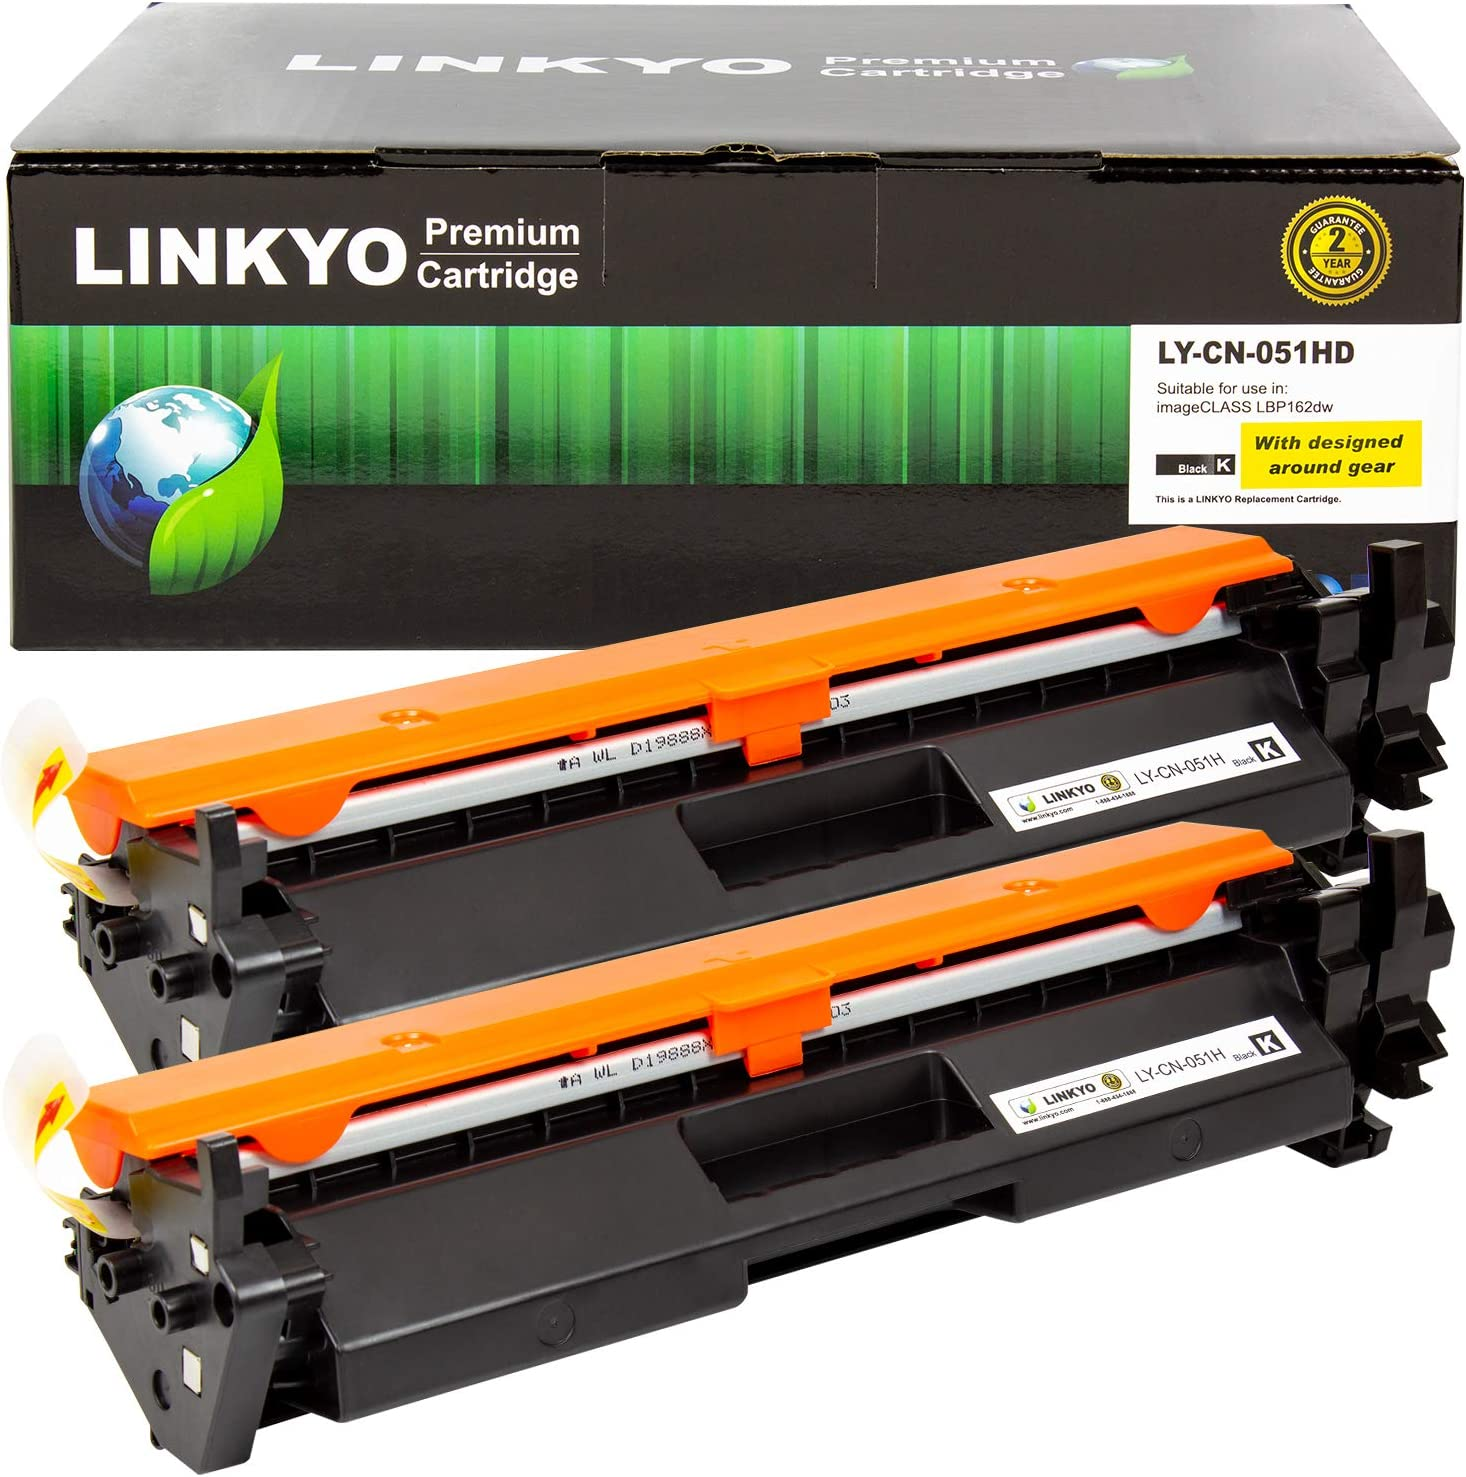 LINKYO Compatible Toner Cartridge Replacement for Canon 051H 051 High Capacity (Black, 2-Pack)